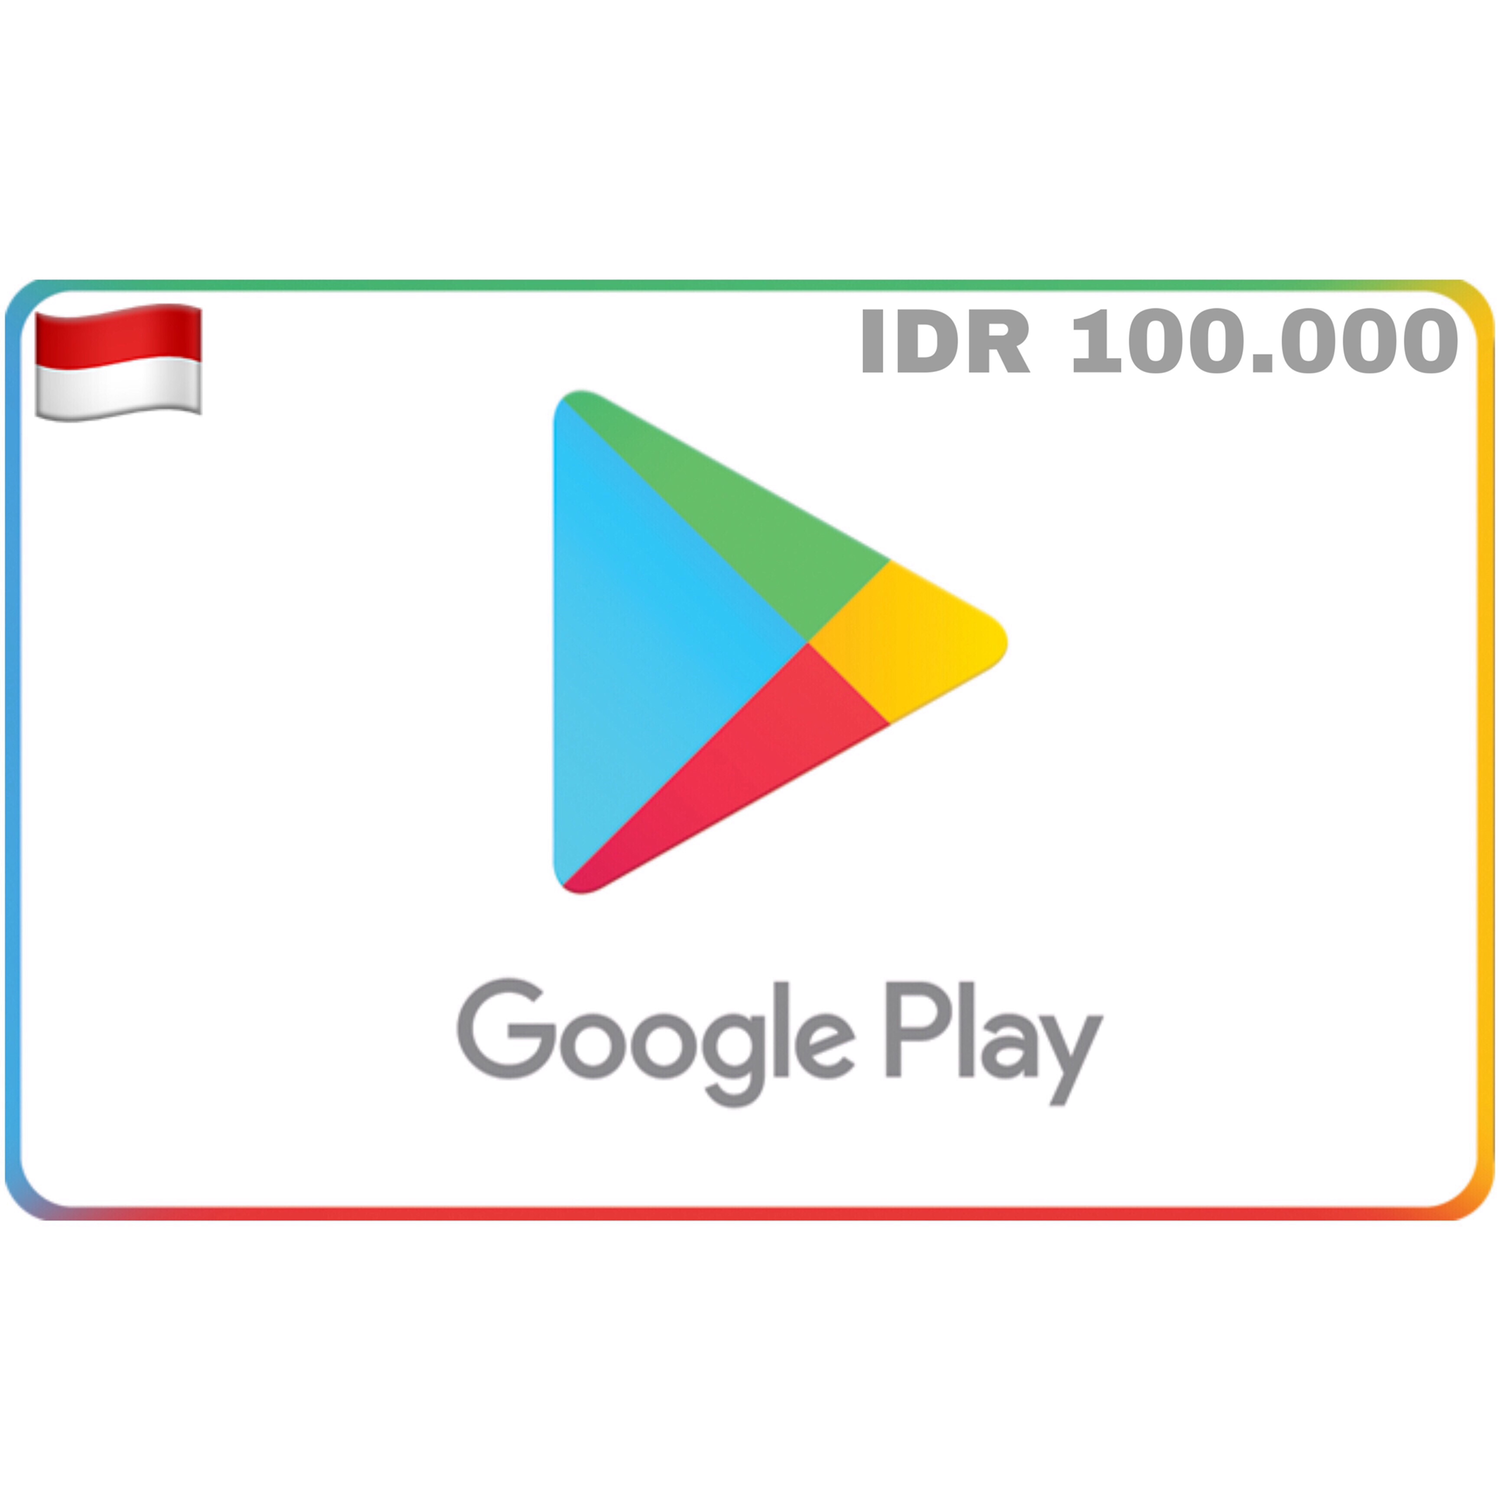 Google Play Indonesia IDR 100.000